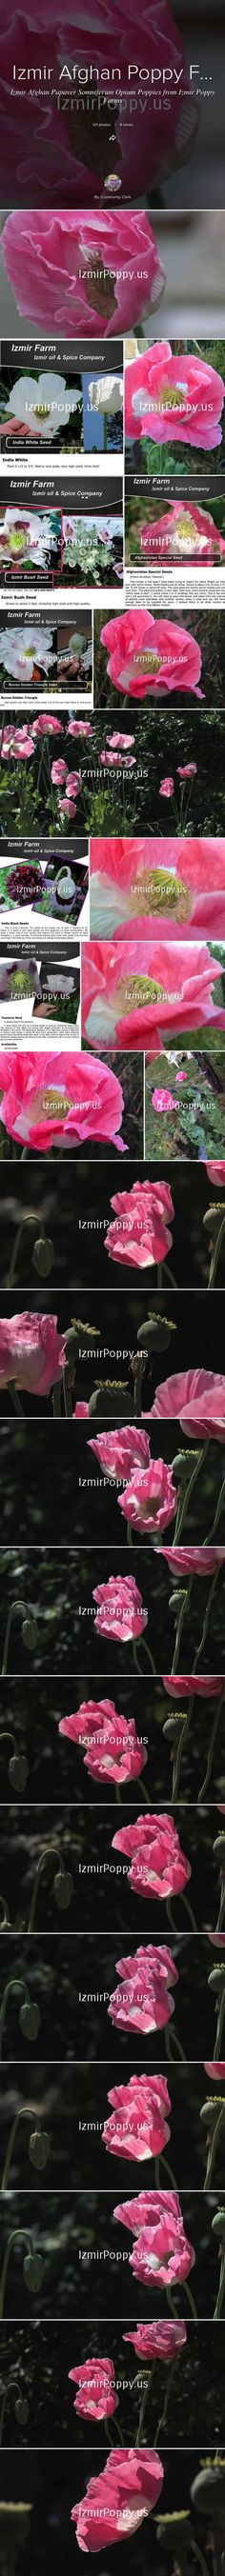 """http://IzmirPoppy.us/ Headlines Report SOURCE of Afghan's NEW 'SUPER Opium Poppy Seed' @IzmirPoppy Called the """"Izmir Afghan Special"""" (Galania): Matures in under 55 Days and Yields more than ANY other Somniferum Poppy #IzmirPoppy via @jdubtbird"""